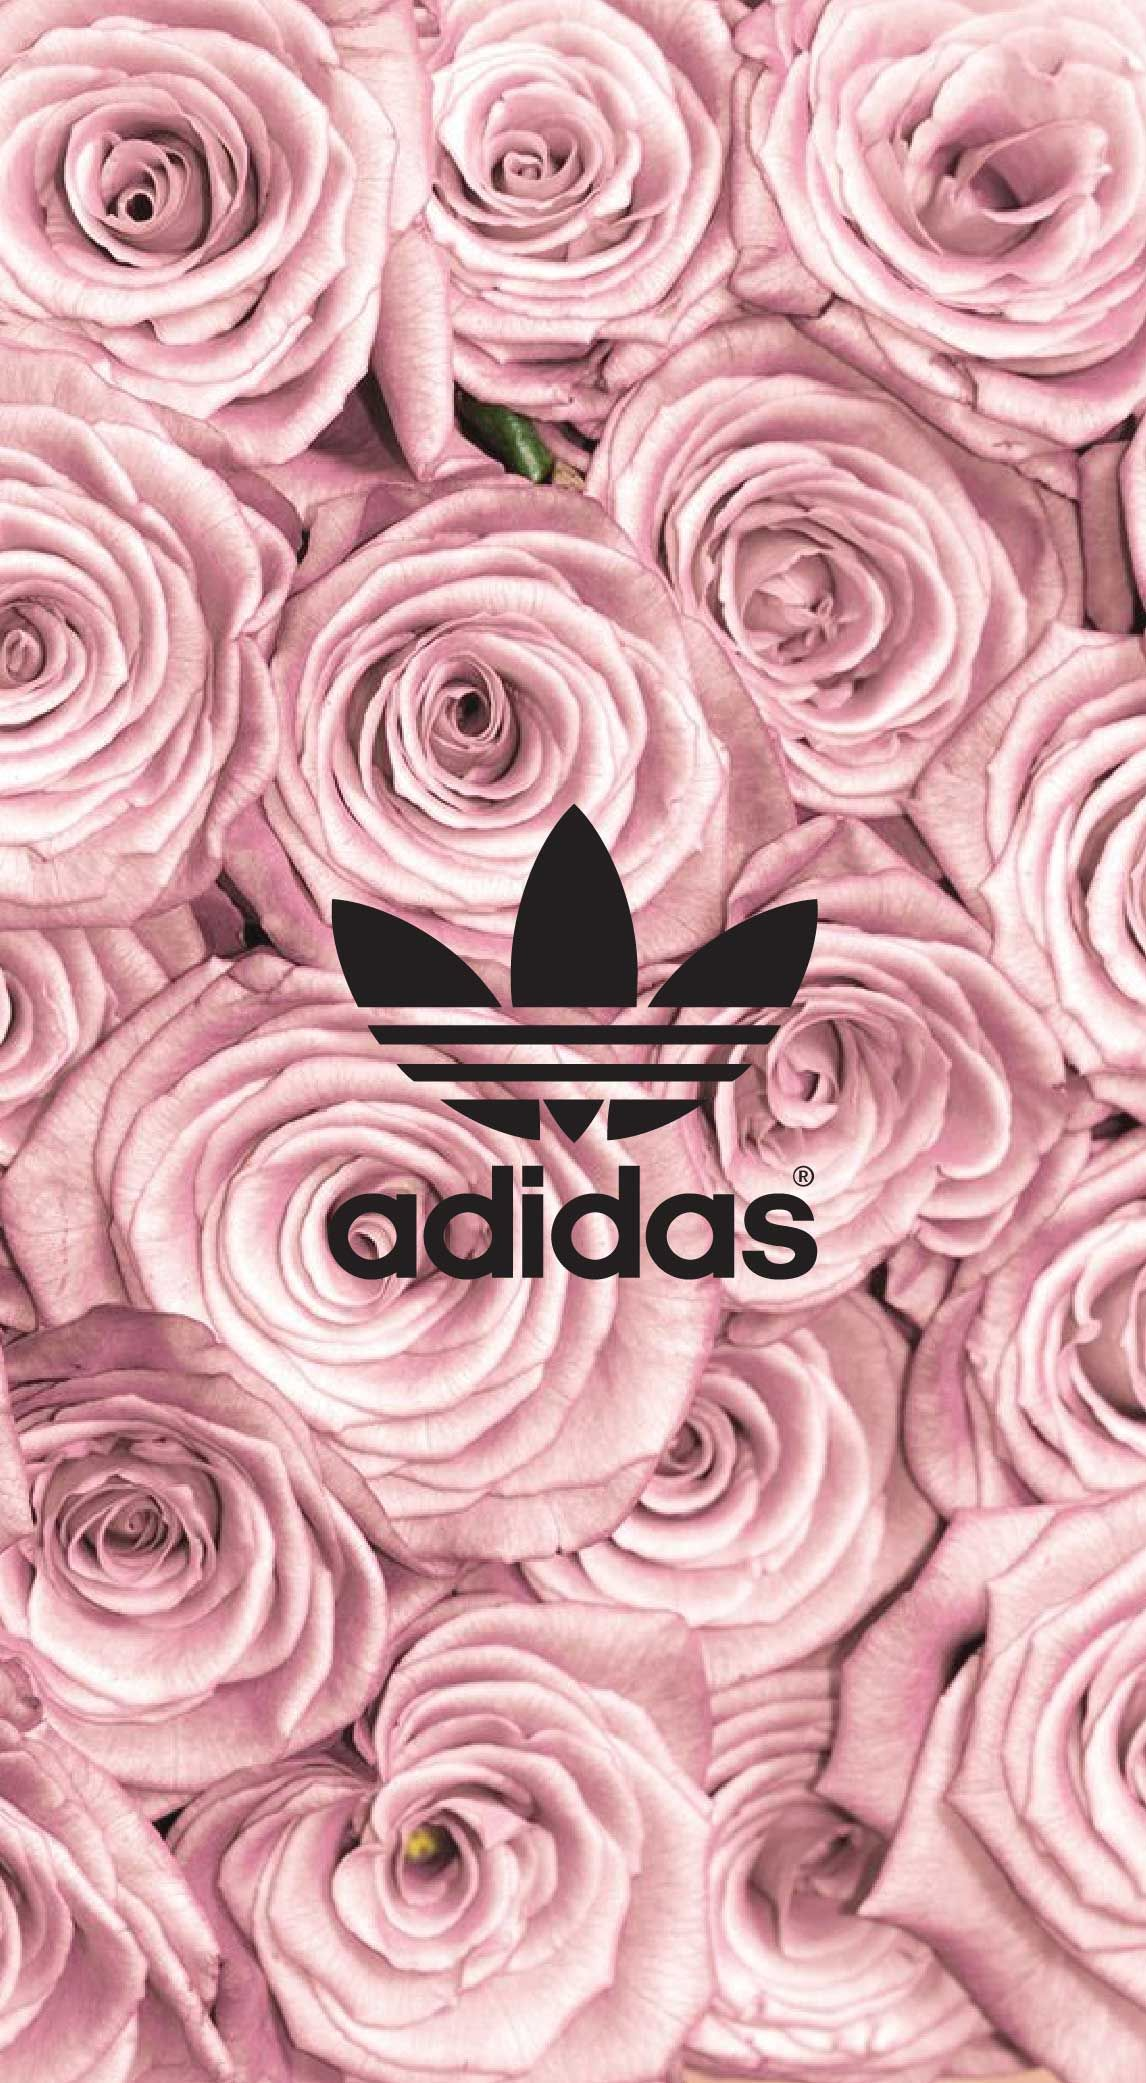 Pin by Koh Shinni on adidas wallpaper Rose gold